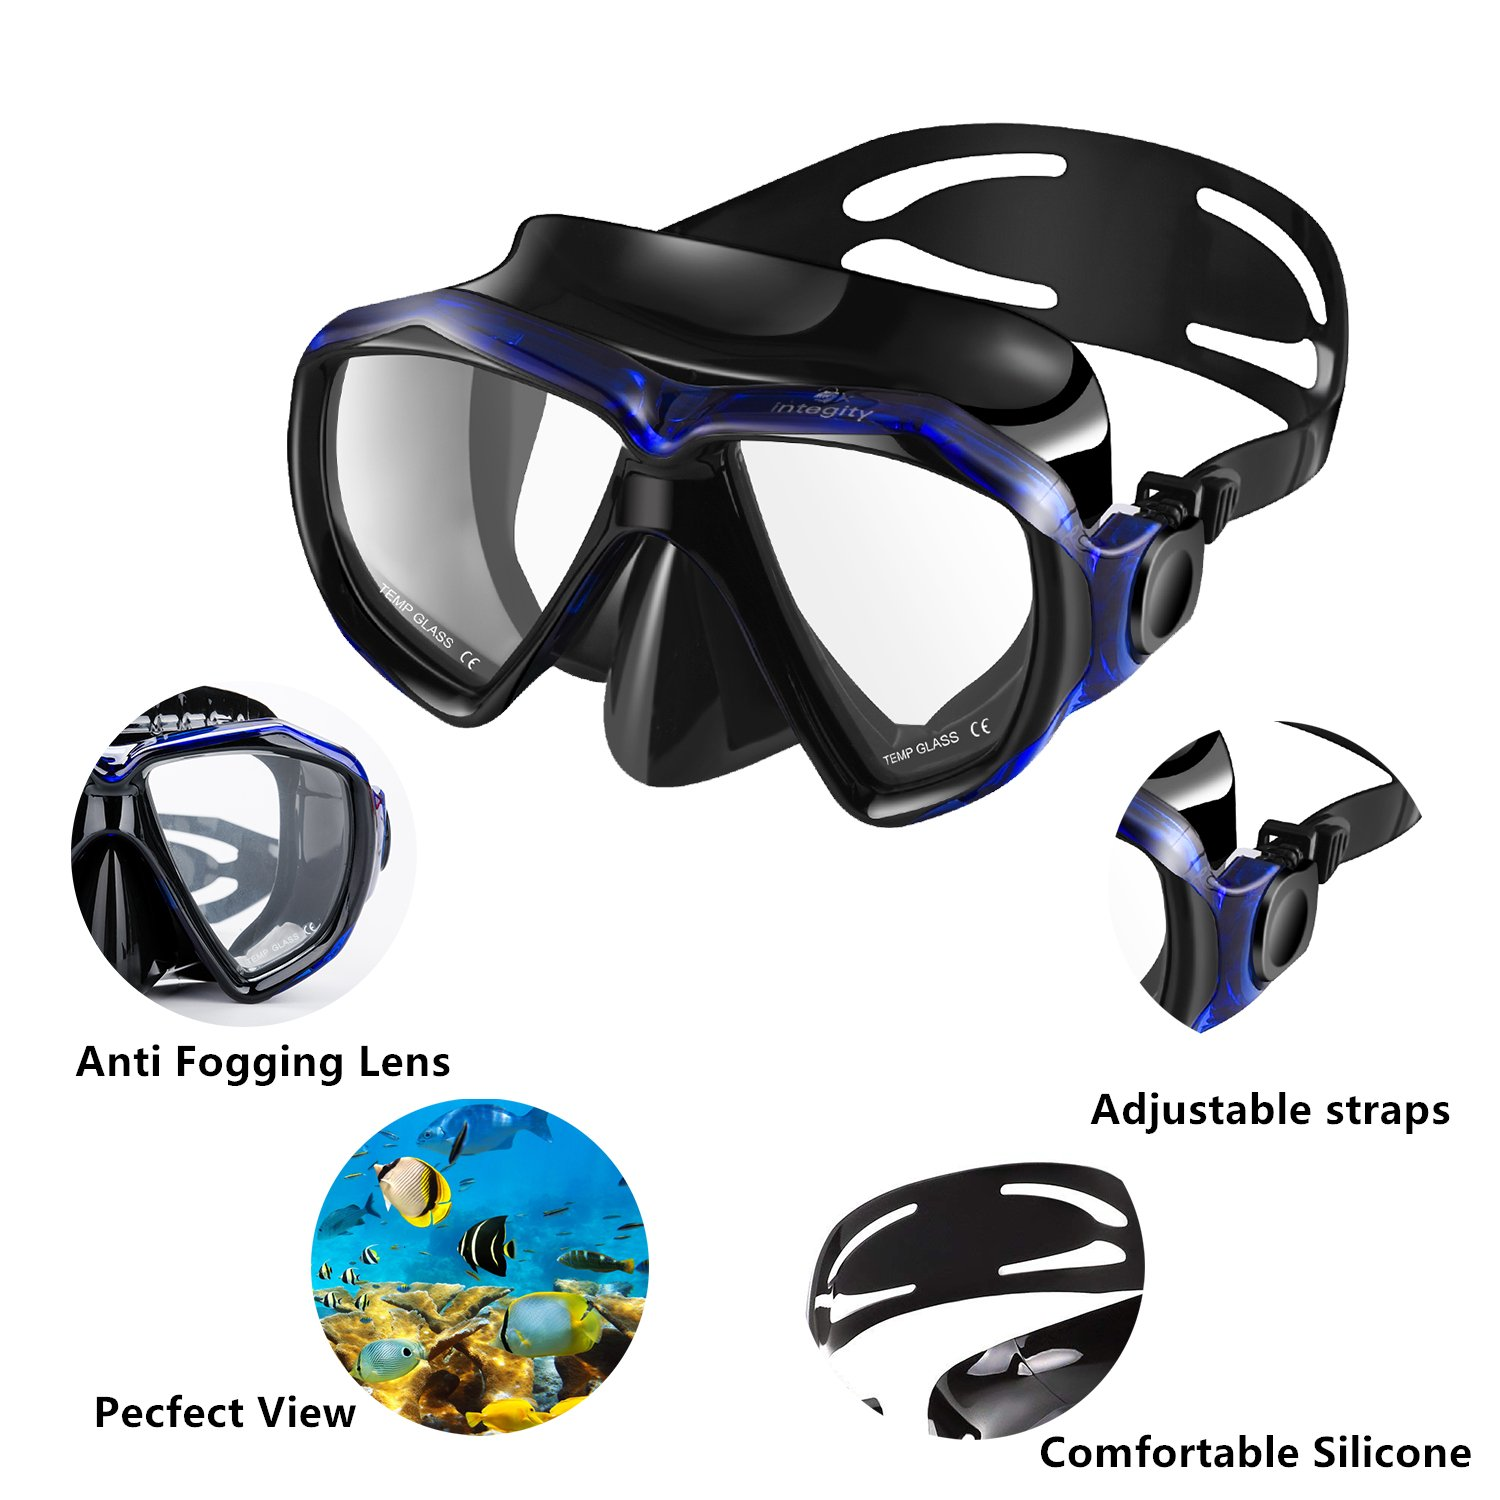 integity Snorkel Set Anti-Fog Snorkel Mask Impact Resistant Panoramic Tempered Glass,Innovative Water-Air Separated Anti-Leak Dry Snorkel Set,Free Breathing Diving Mask Adjustable Straps Youth Adult